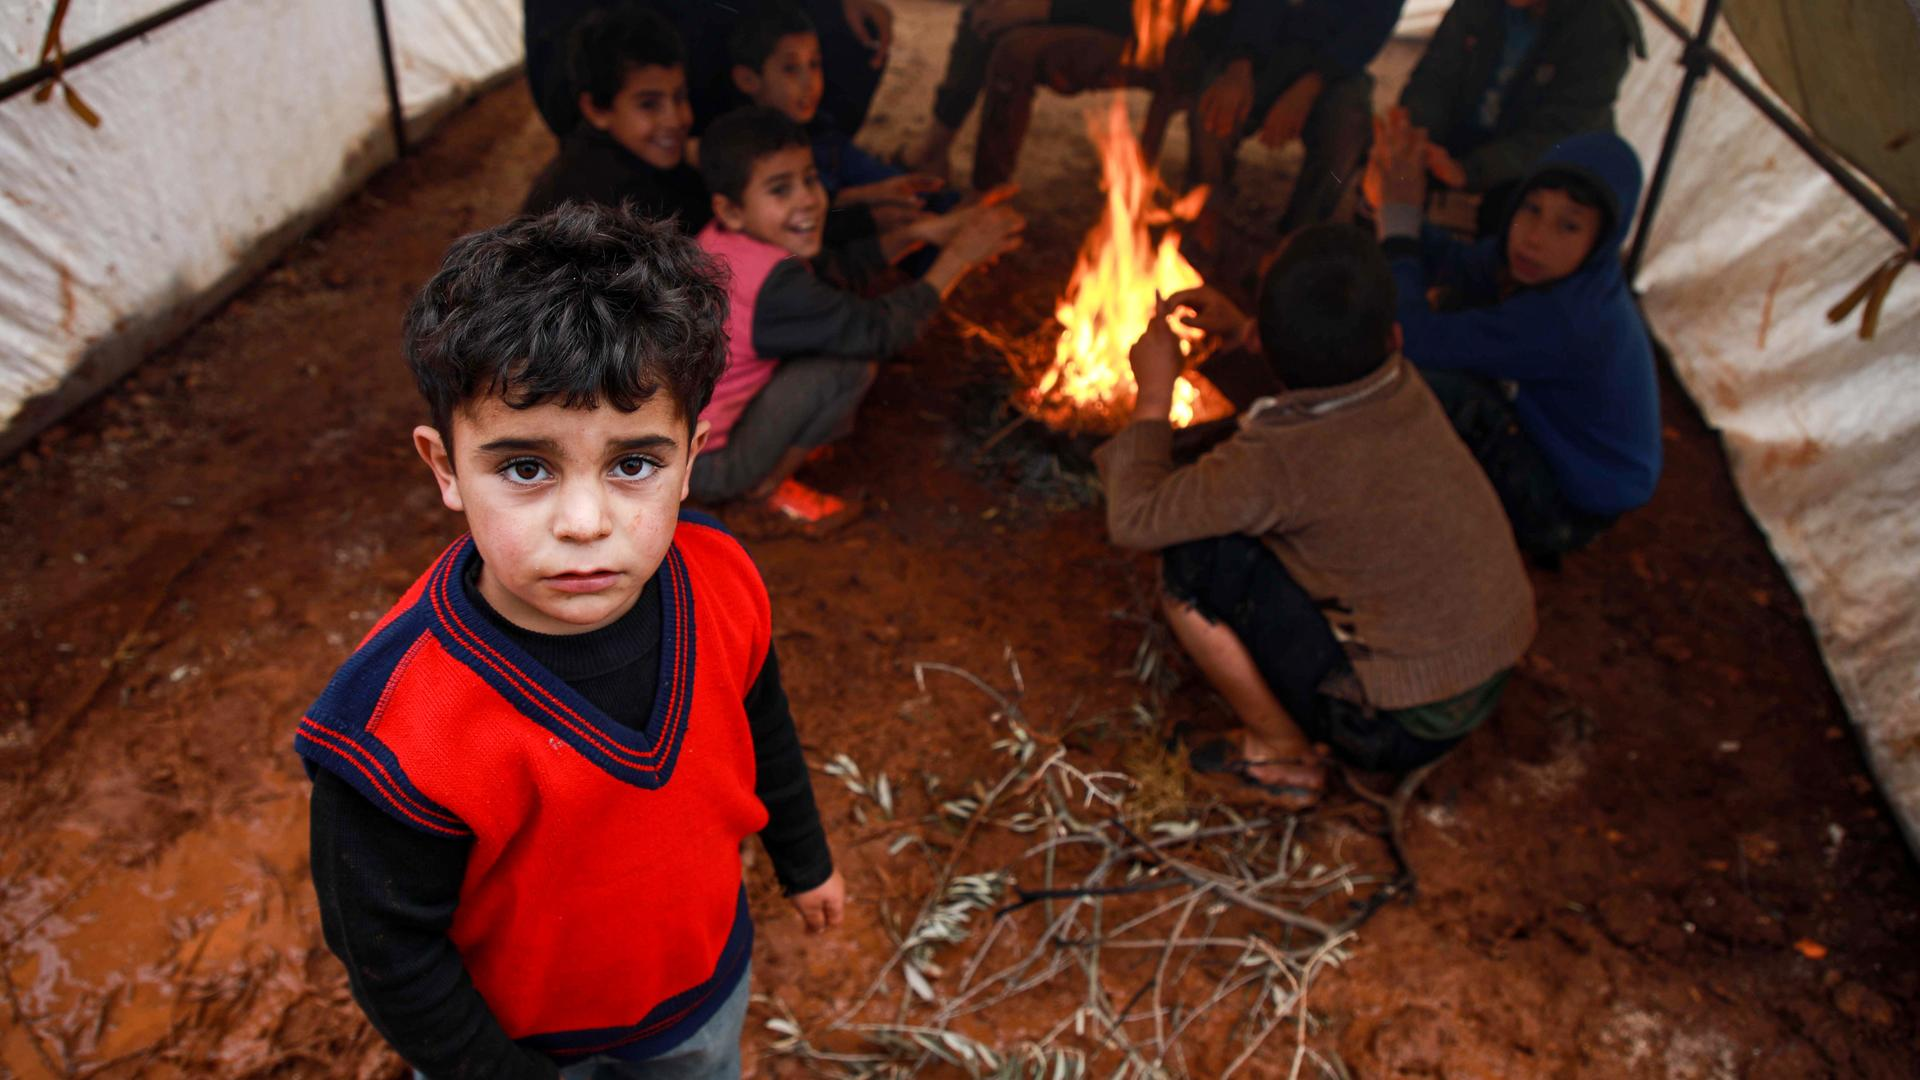 A boy looks on as other children behind sit by a fire inside a tent at a flooded camp for displaced Syrians near the village of Killi in the north of the northwestern Idlib province on December 5, 2019. (Photo by Aaref WATAD / AFP) (Photo by AAREF WATAD/A